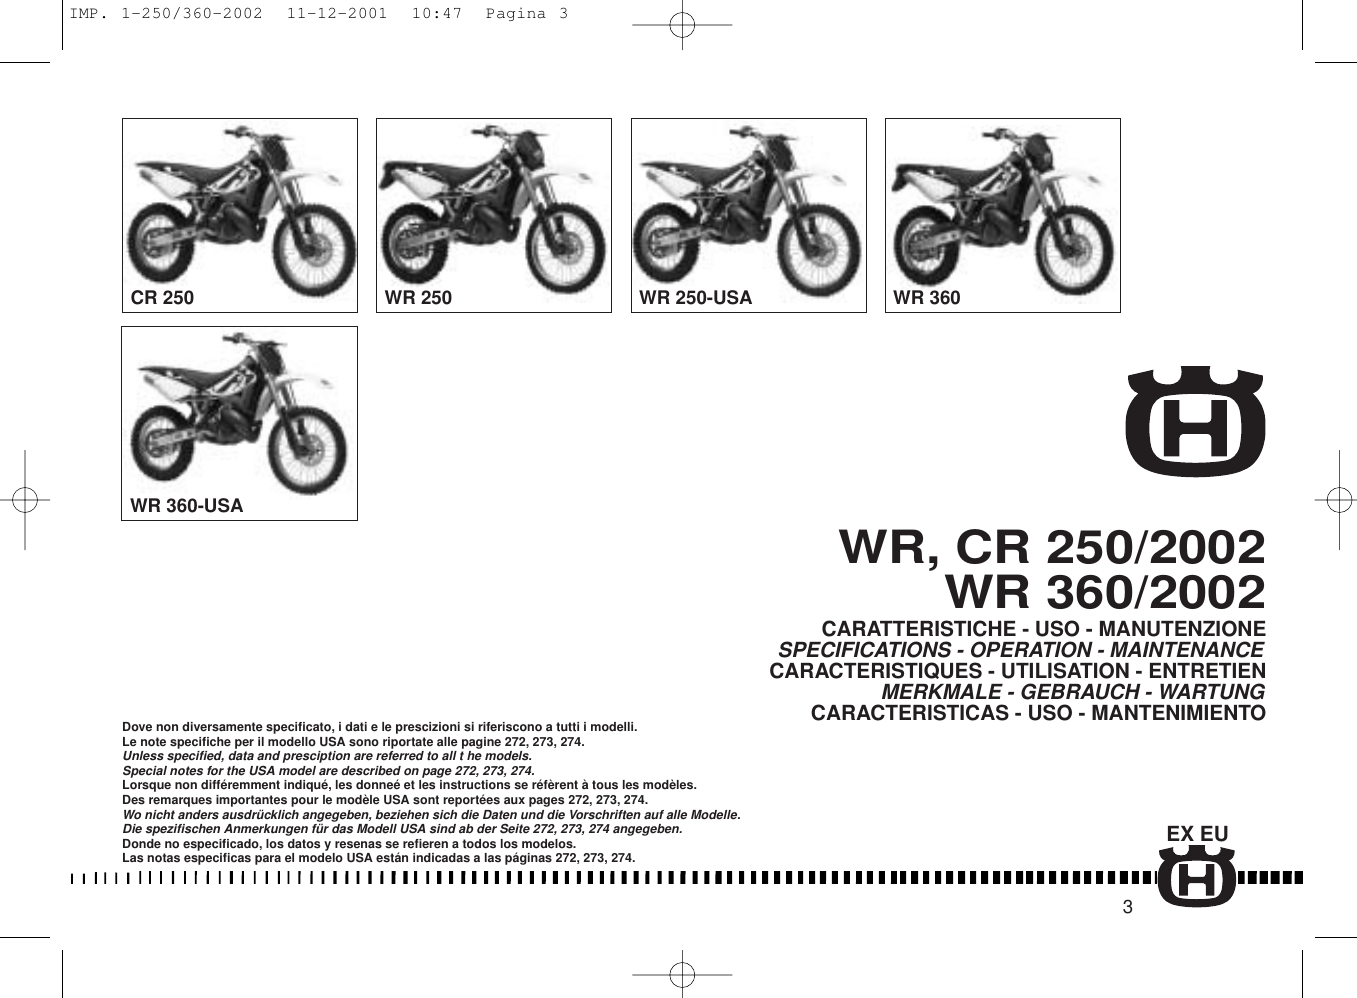 Husqvarna Motorcycle Cr 2002 Users Manual Imp 1 250 360